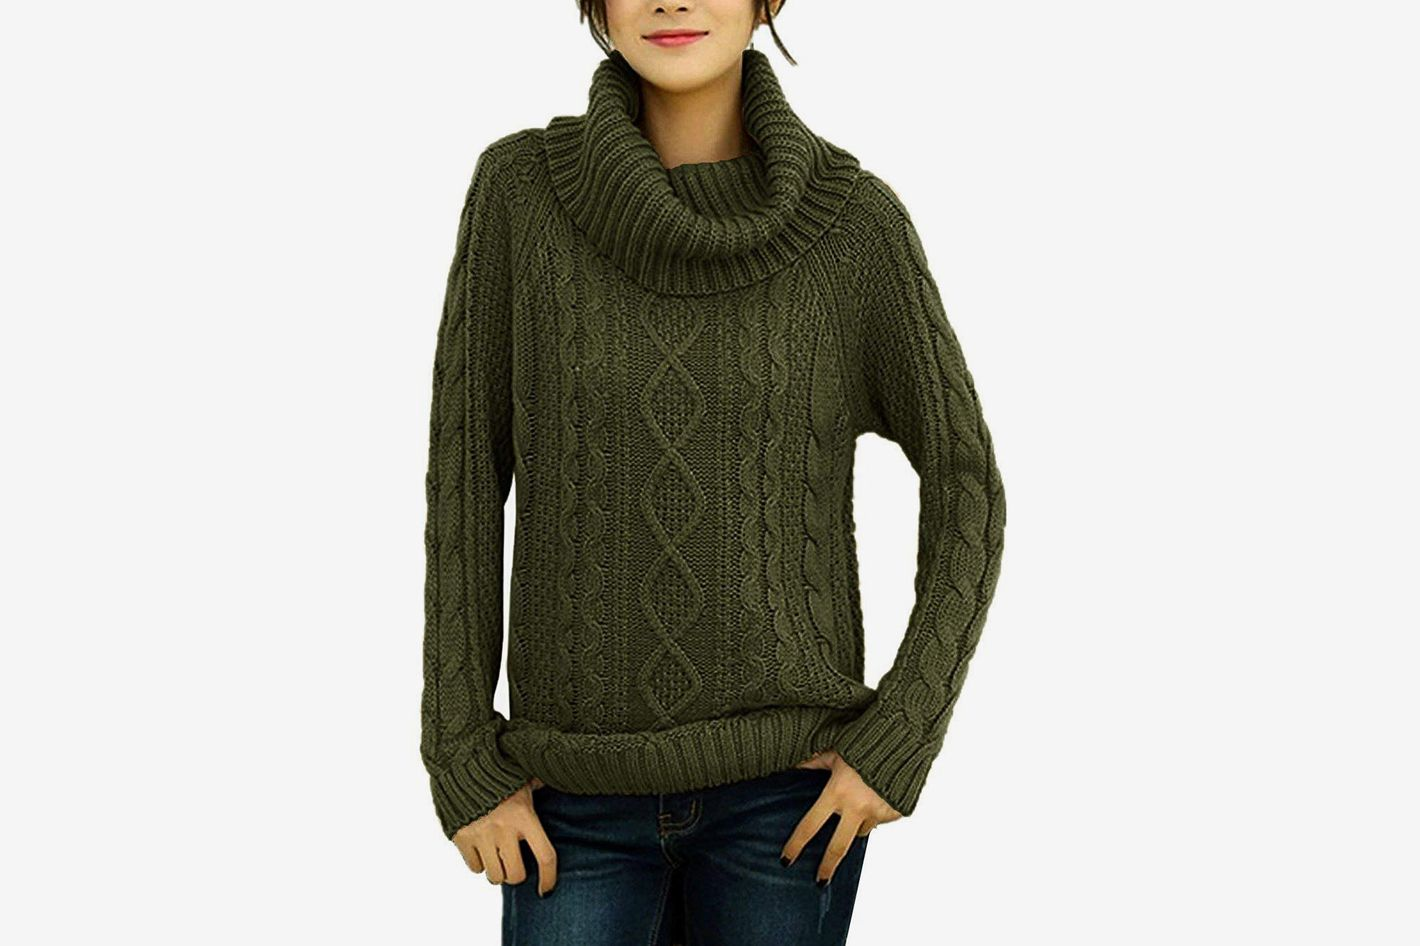 41f7666fbf6 v28 Women s Korean Design Turtle Cowl Neck Ribbed Cable Knit Long Sweater  Jumper